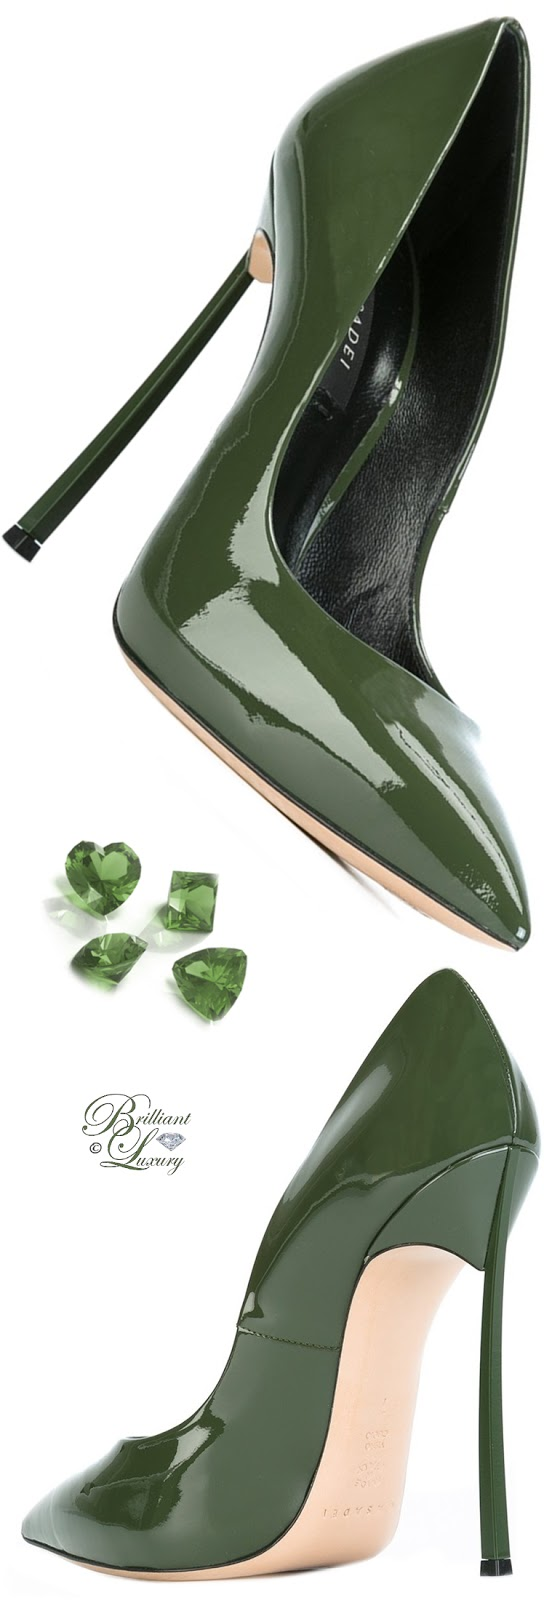 Casadei Green Stiletto Heel Pumps #shoes #pantone #brilliantluxury